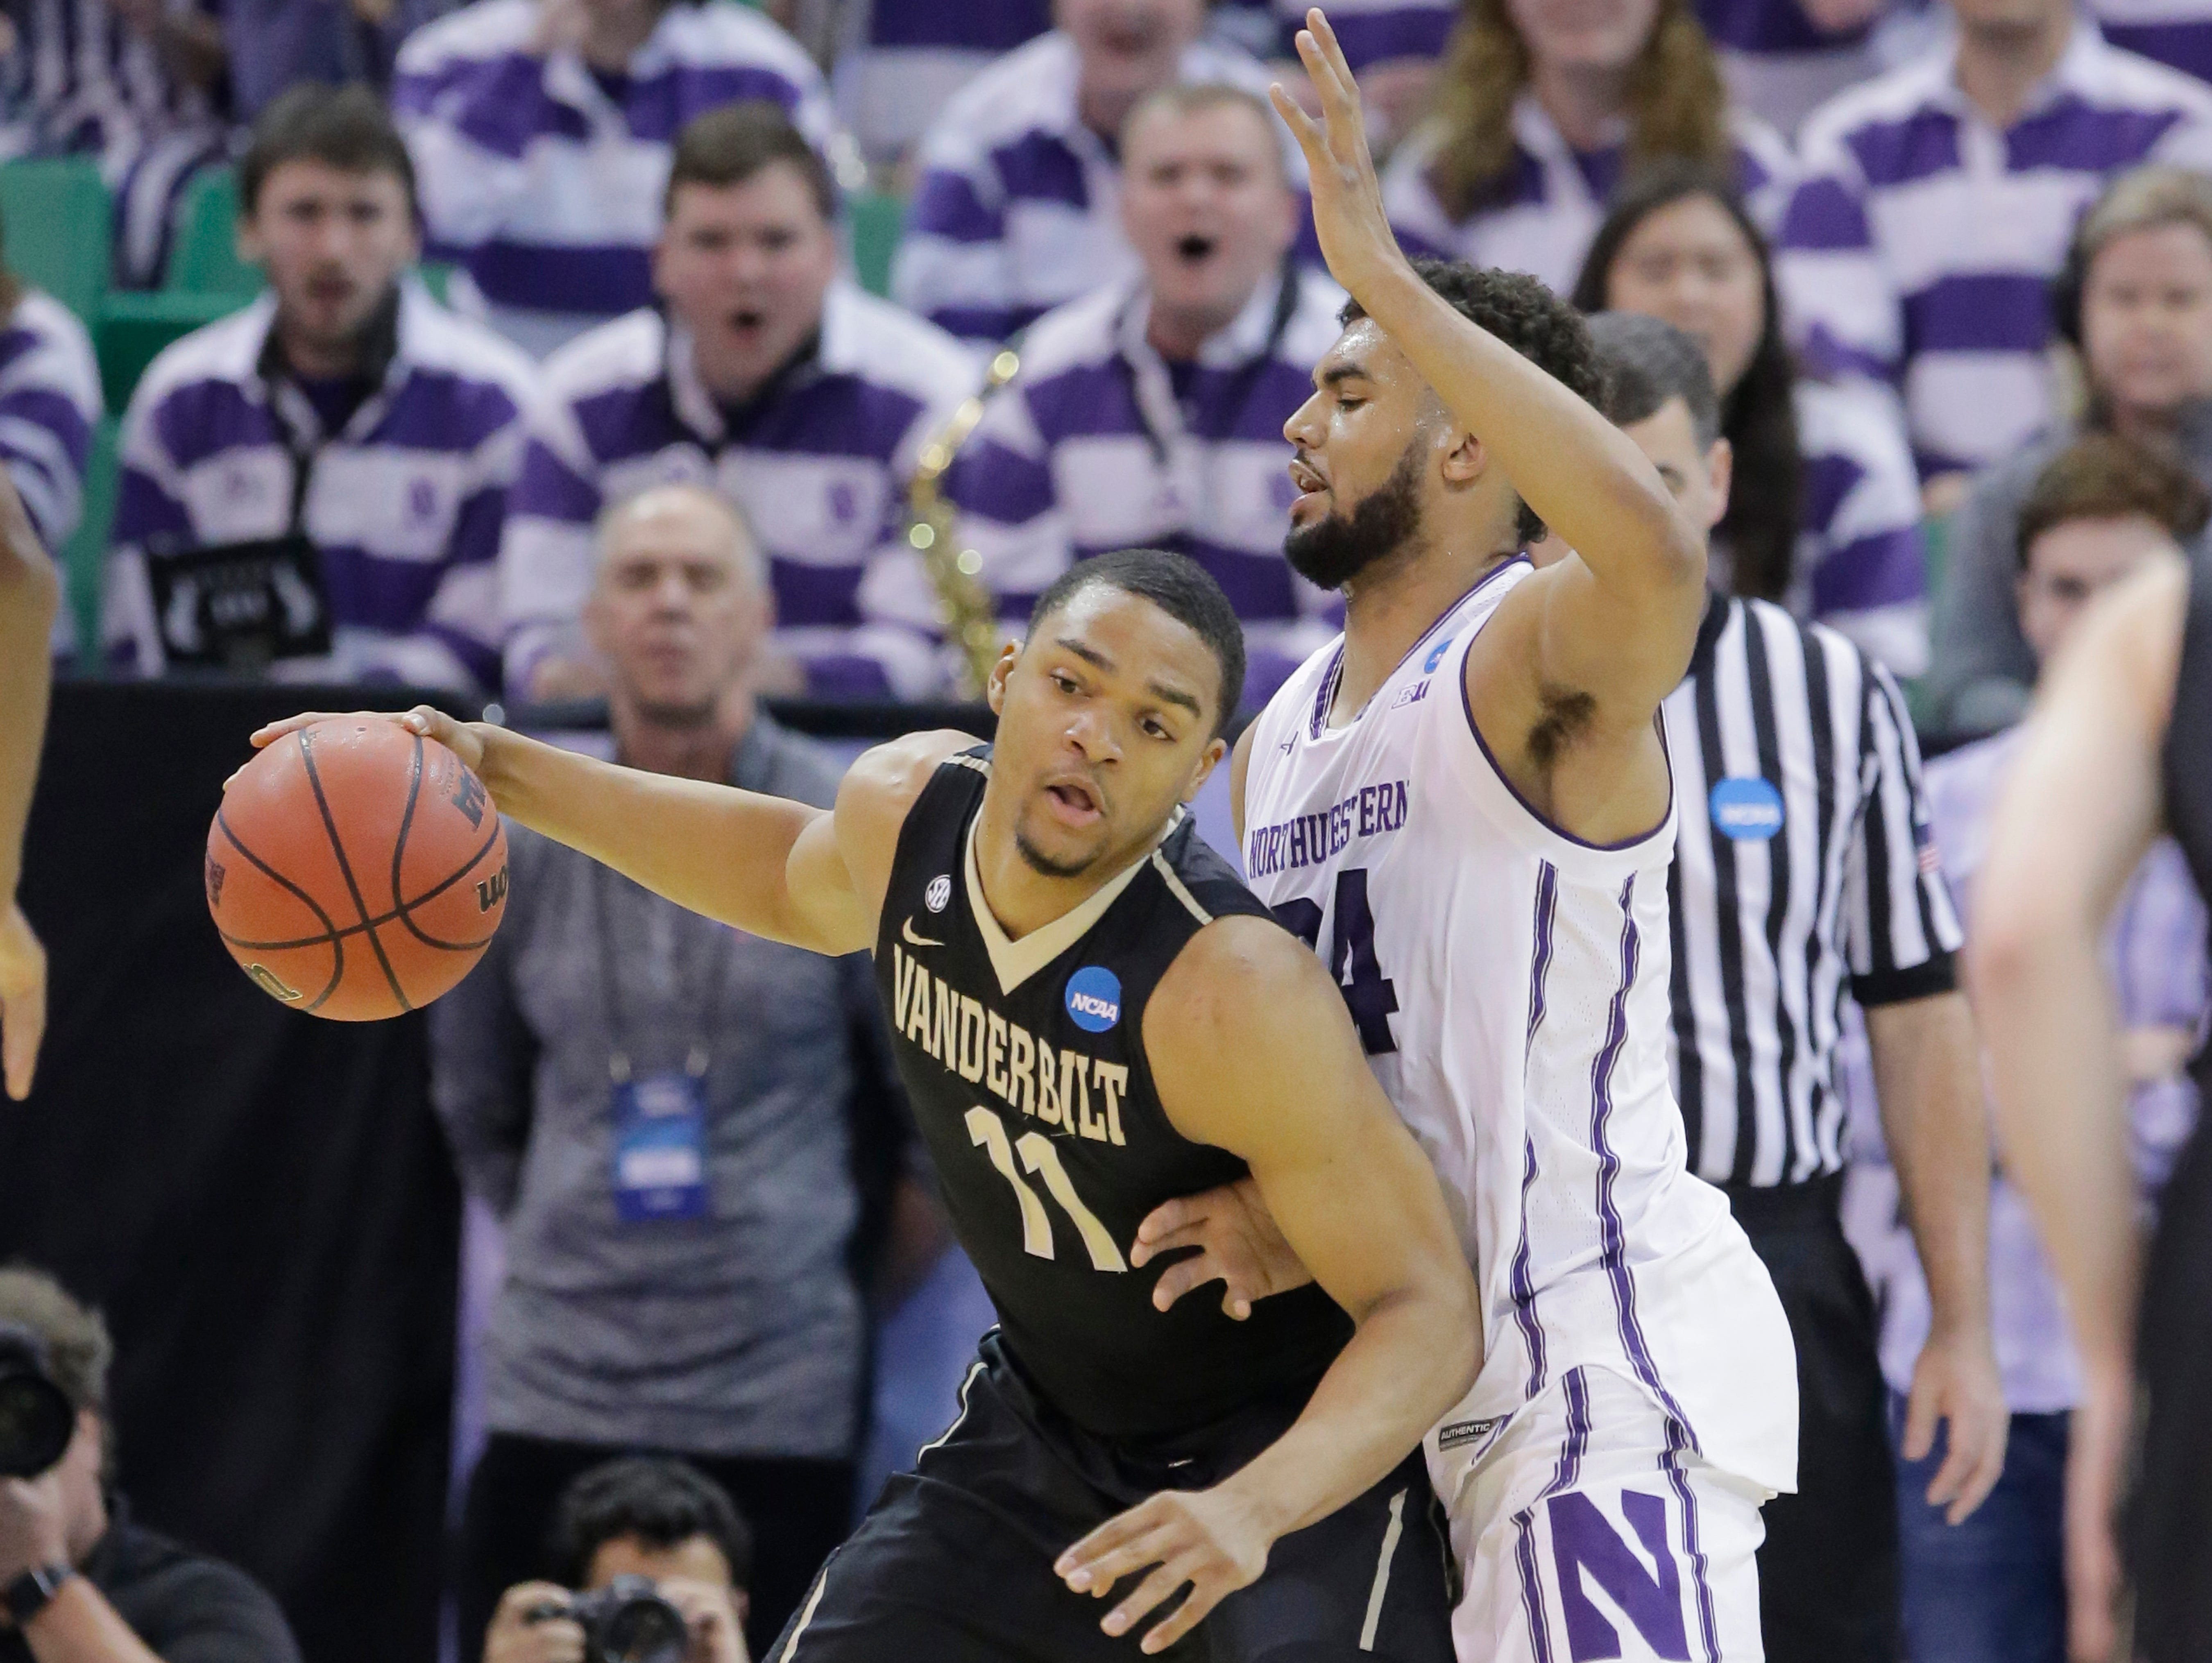 Northwestern guard Sanjay Lumpkin guards Vanderbilt forward Jeff Roberson (11) during the first half of an NCAA Tournament first-round game on March 16, 2017, in Salt Lake City.